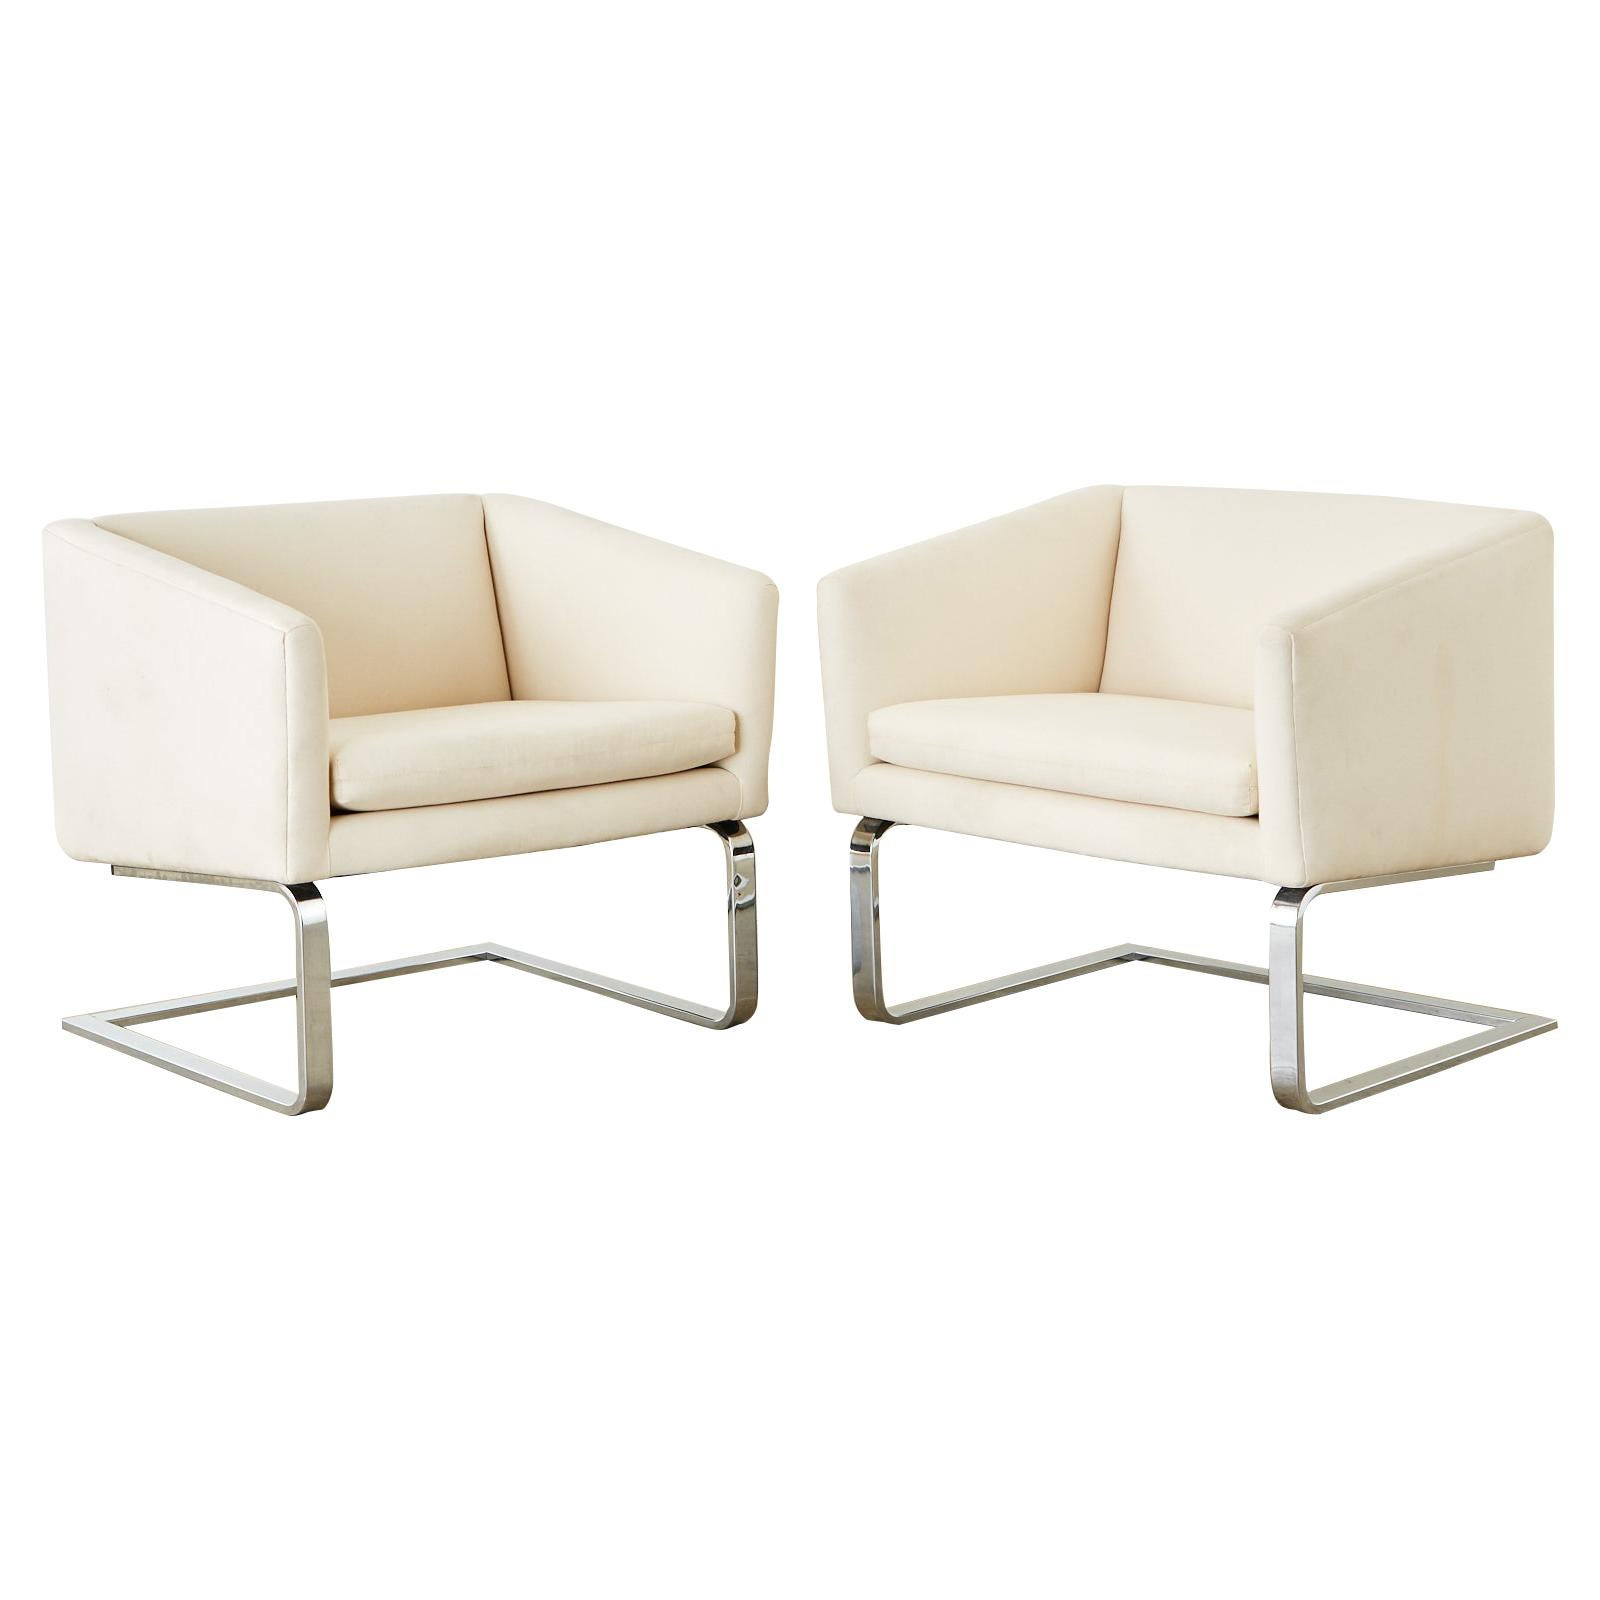 Pair of Selig Mid-Century Modern Cantilever Lounge Chairs